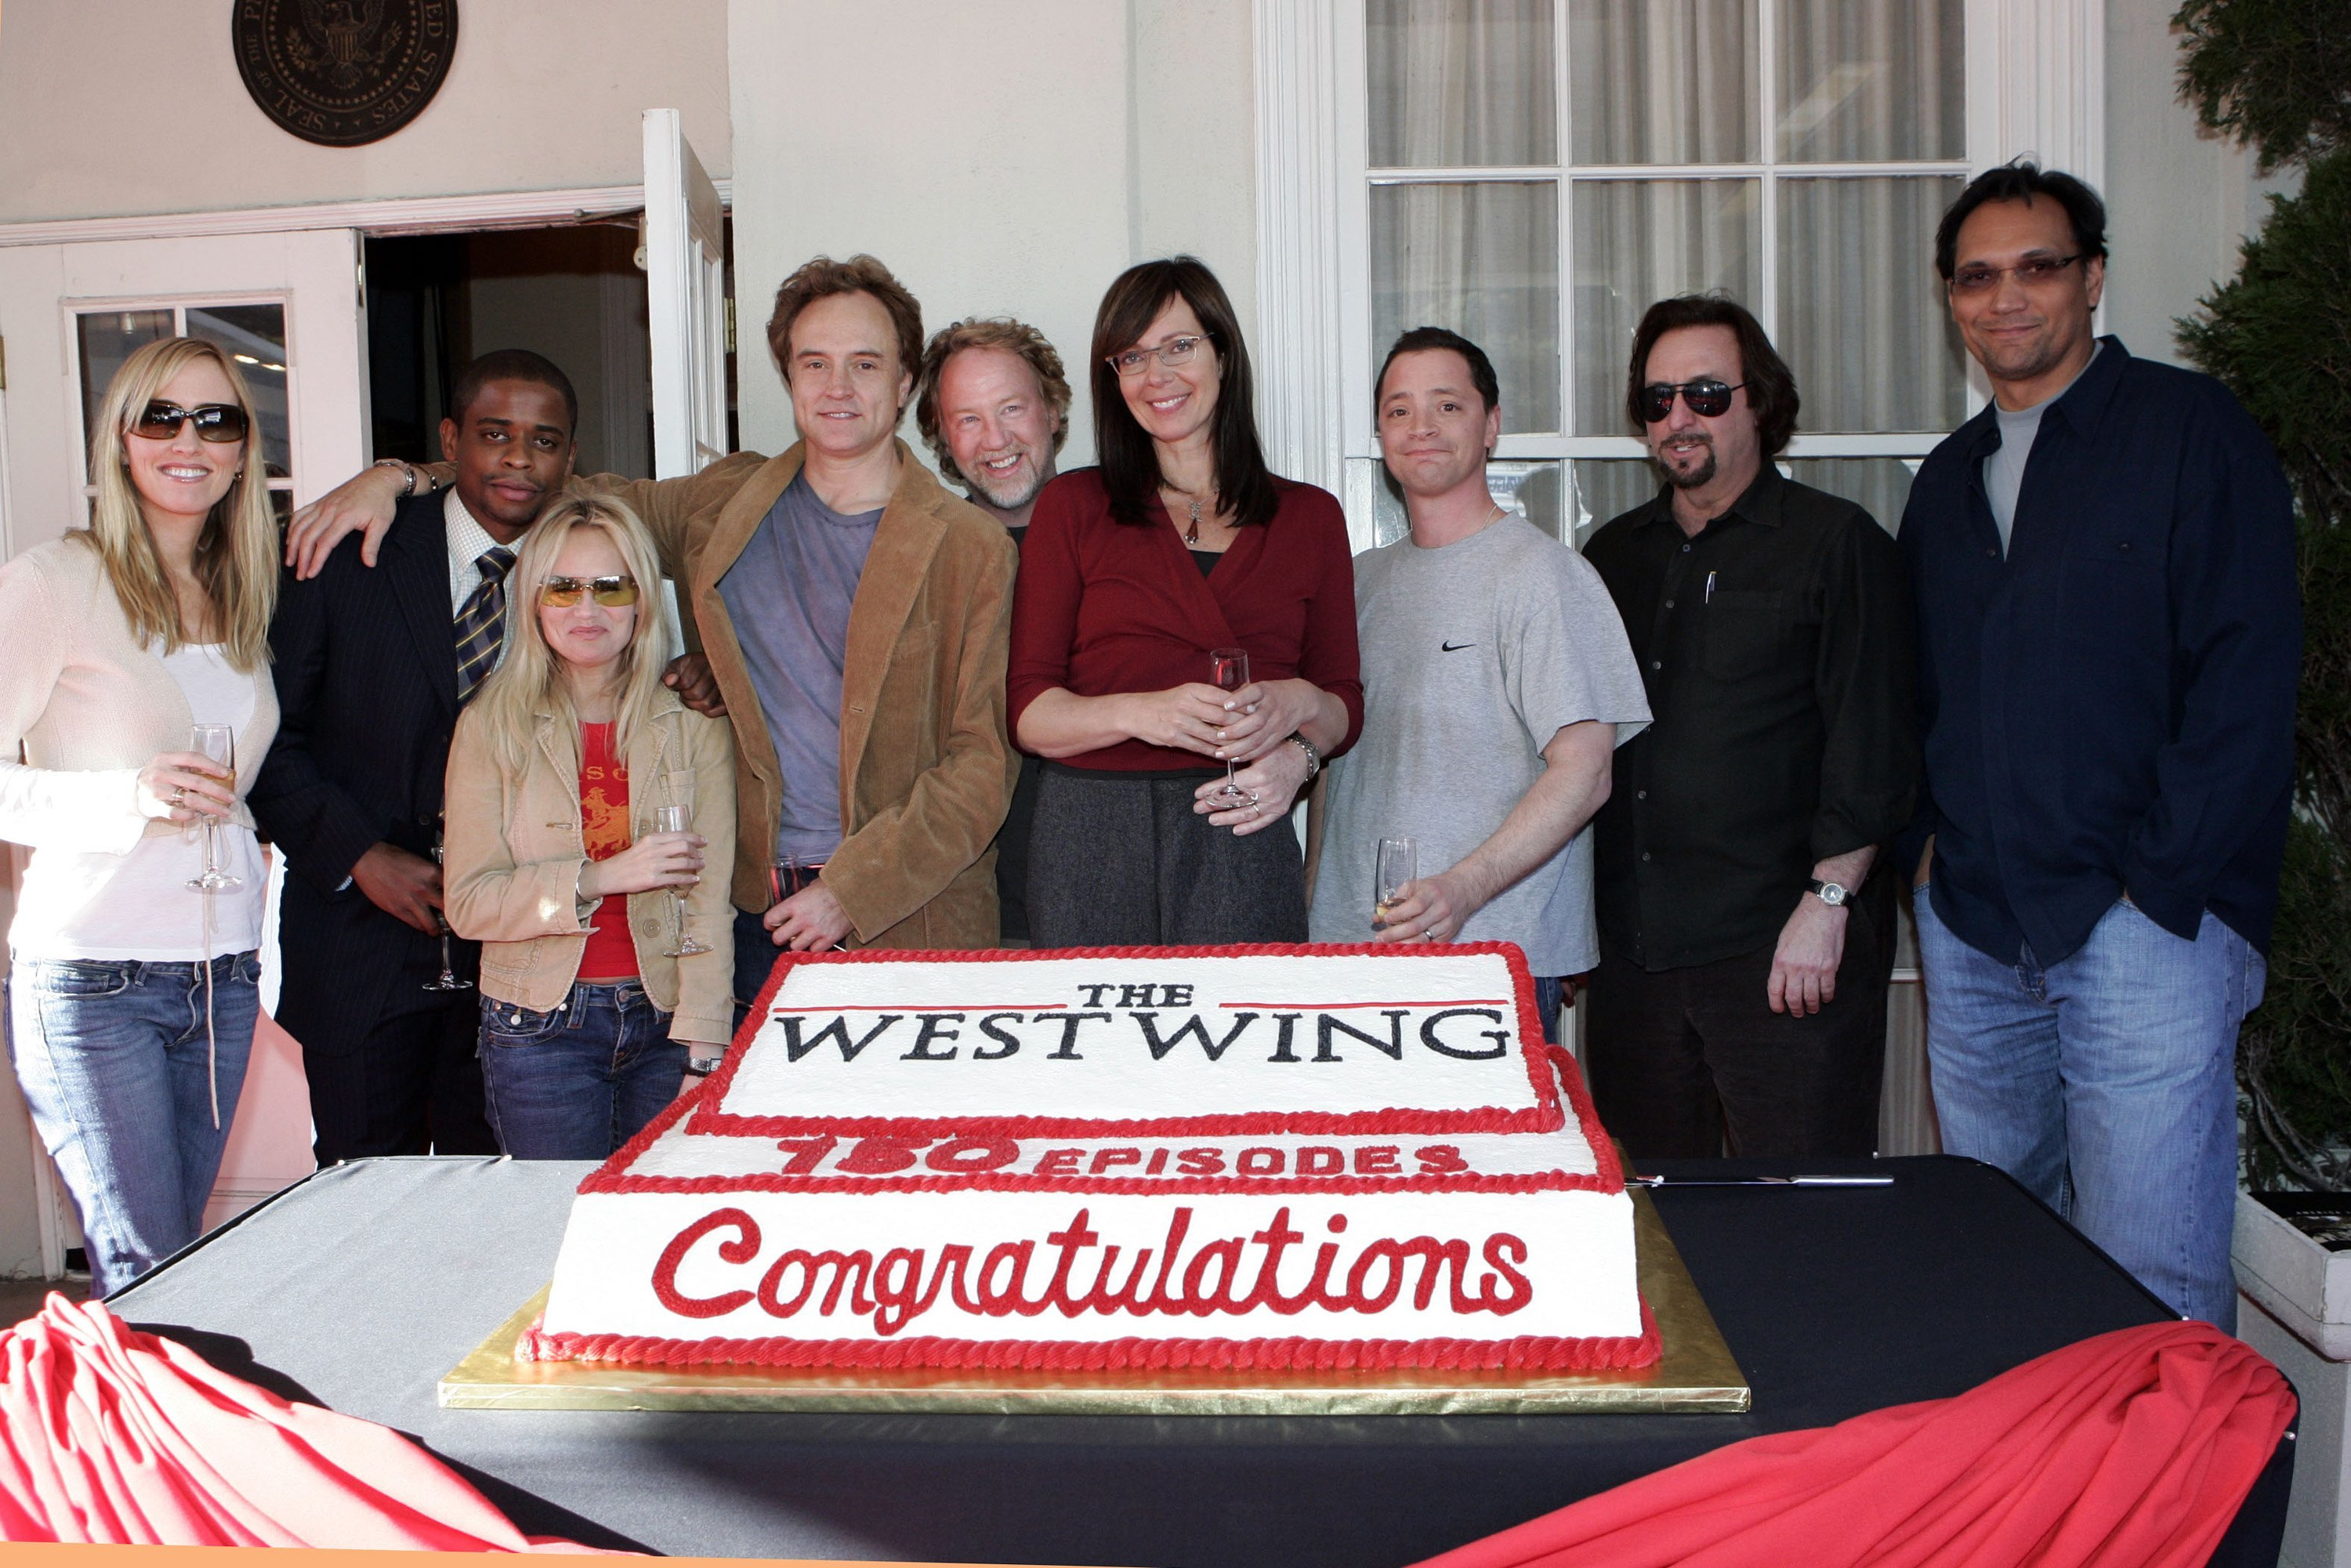 """The cast of """"The West Wing"""" celebrates their 150th episode, which aired on April 2, 2006."""